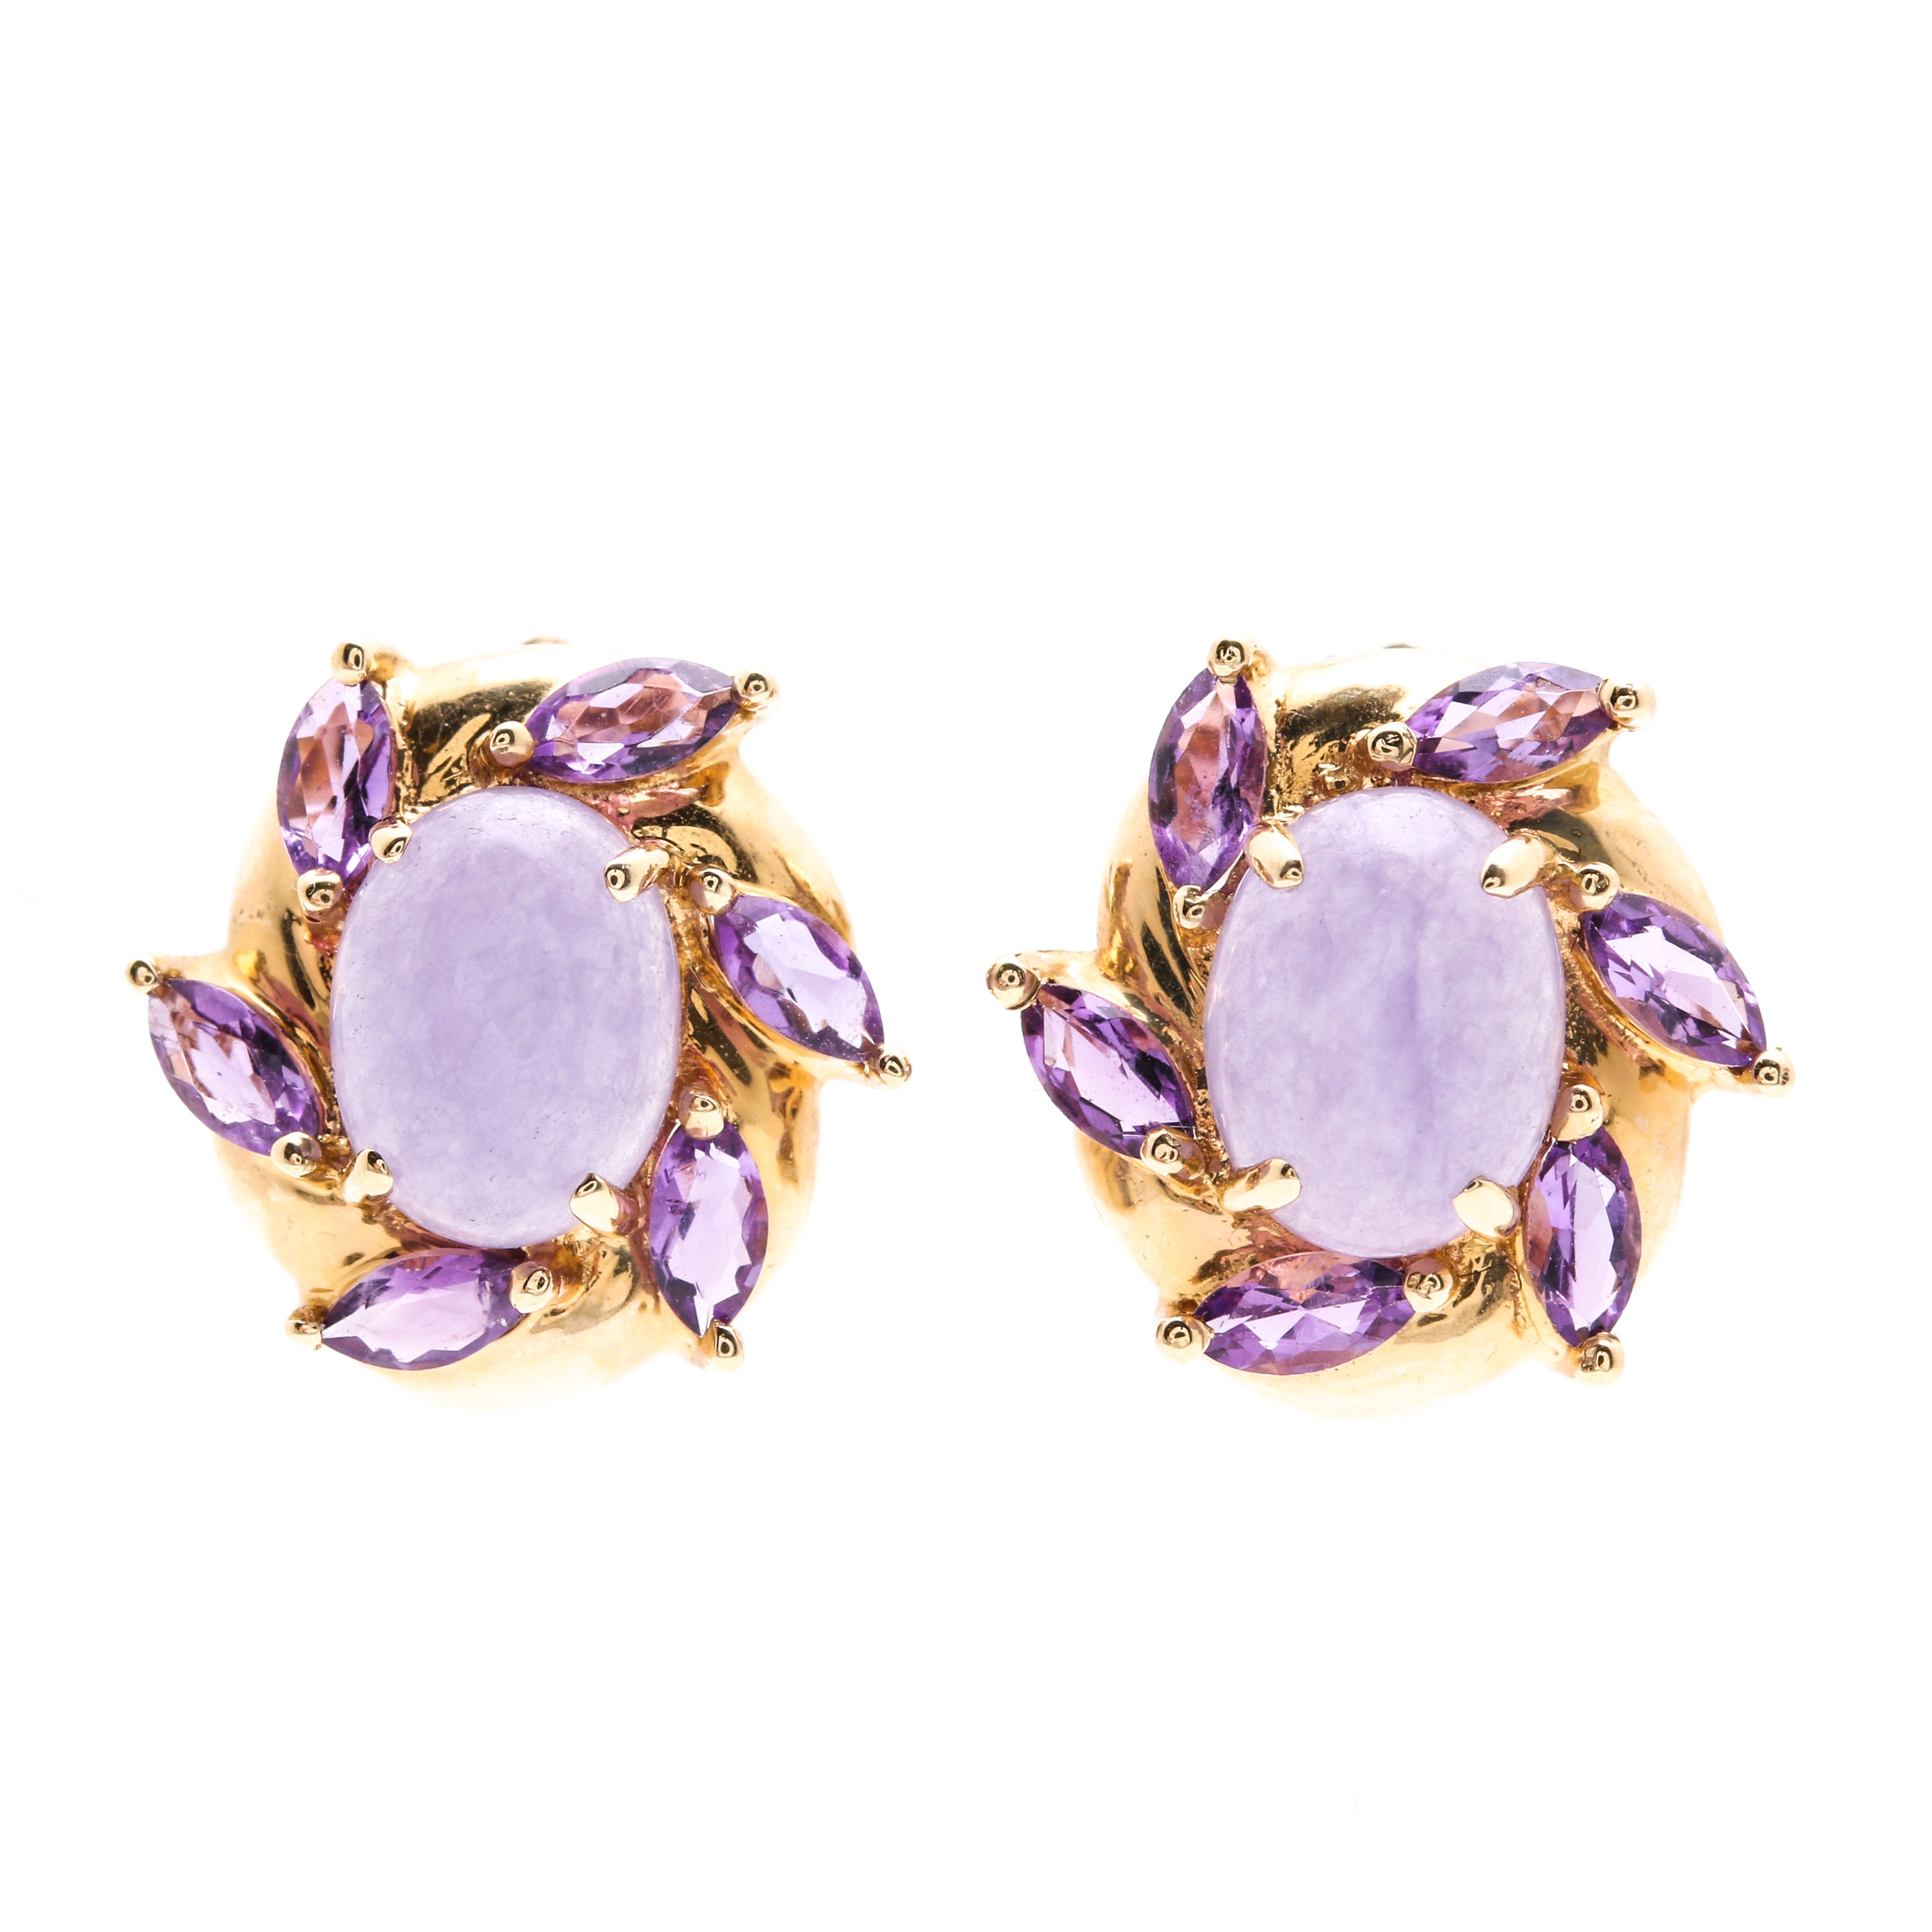 14K Yellow Gold Jadeite and Amethyst Earrings